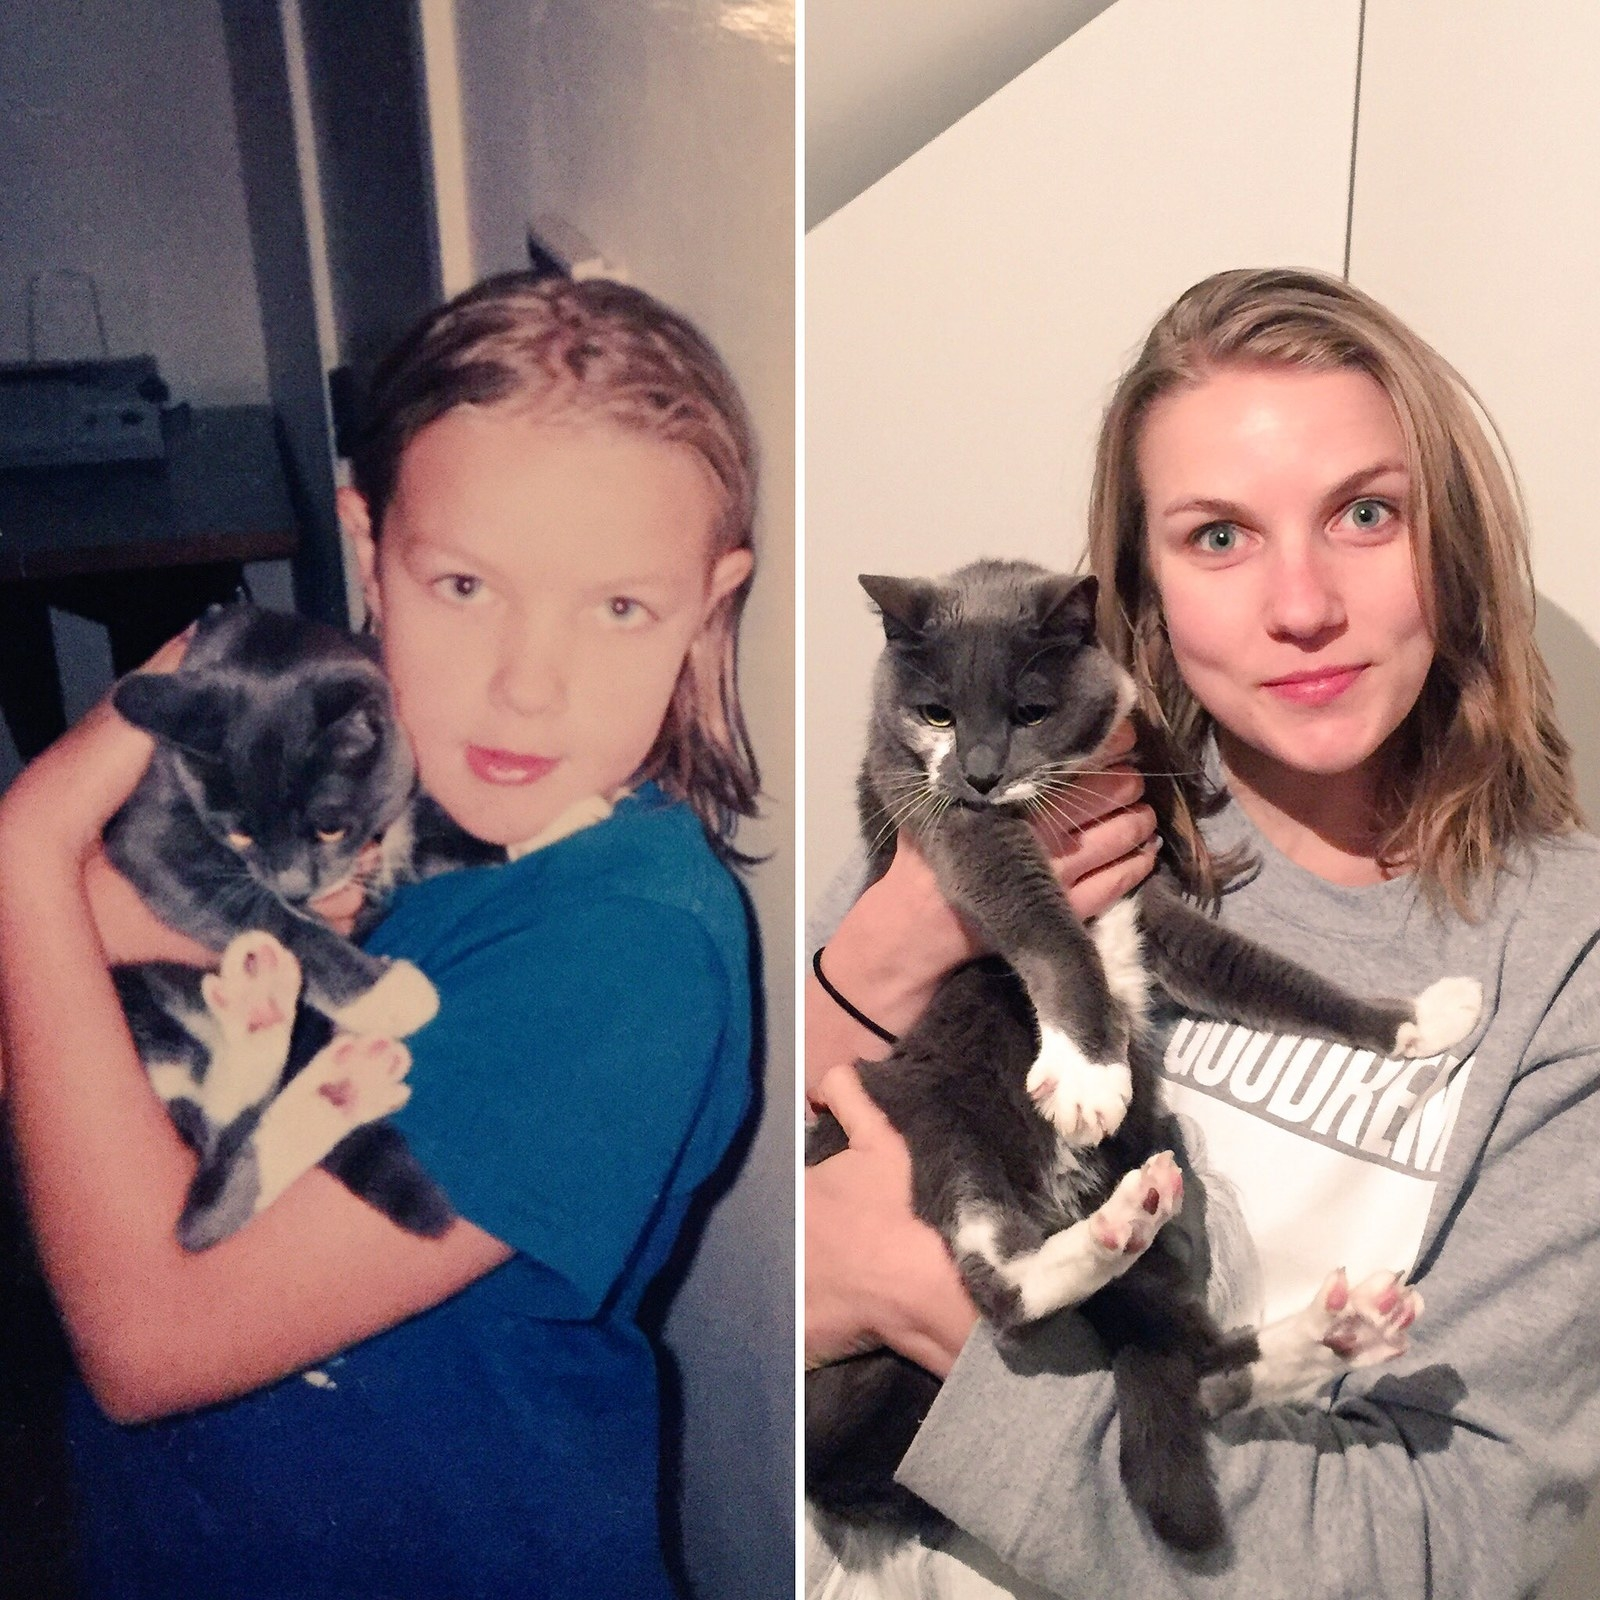 57 Before And After Photos Of Kittens That Will Melt Your Heart